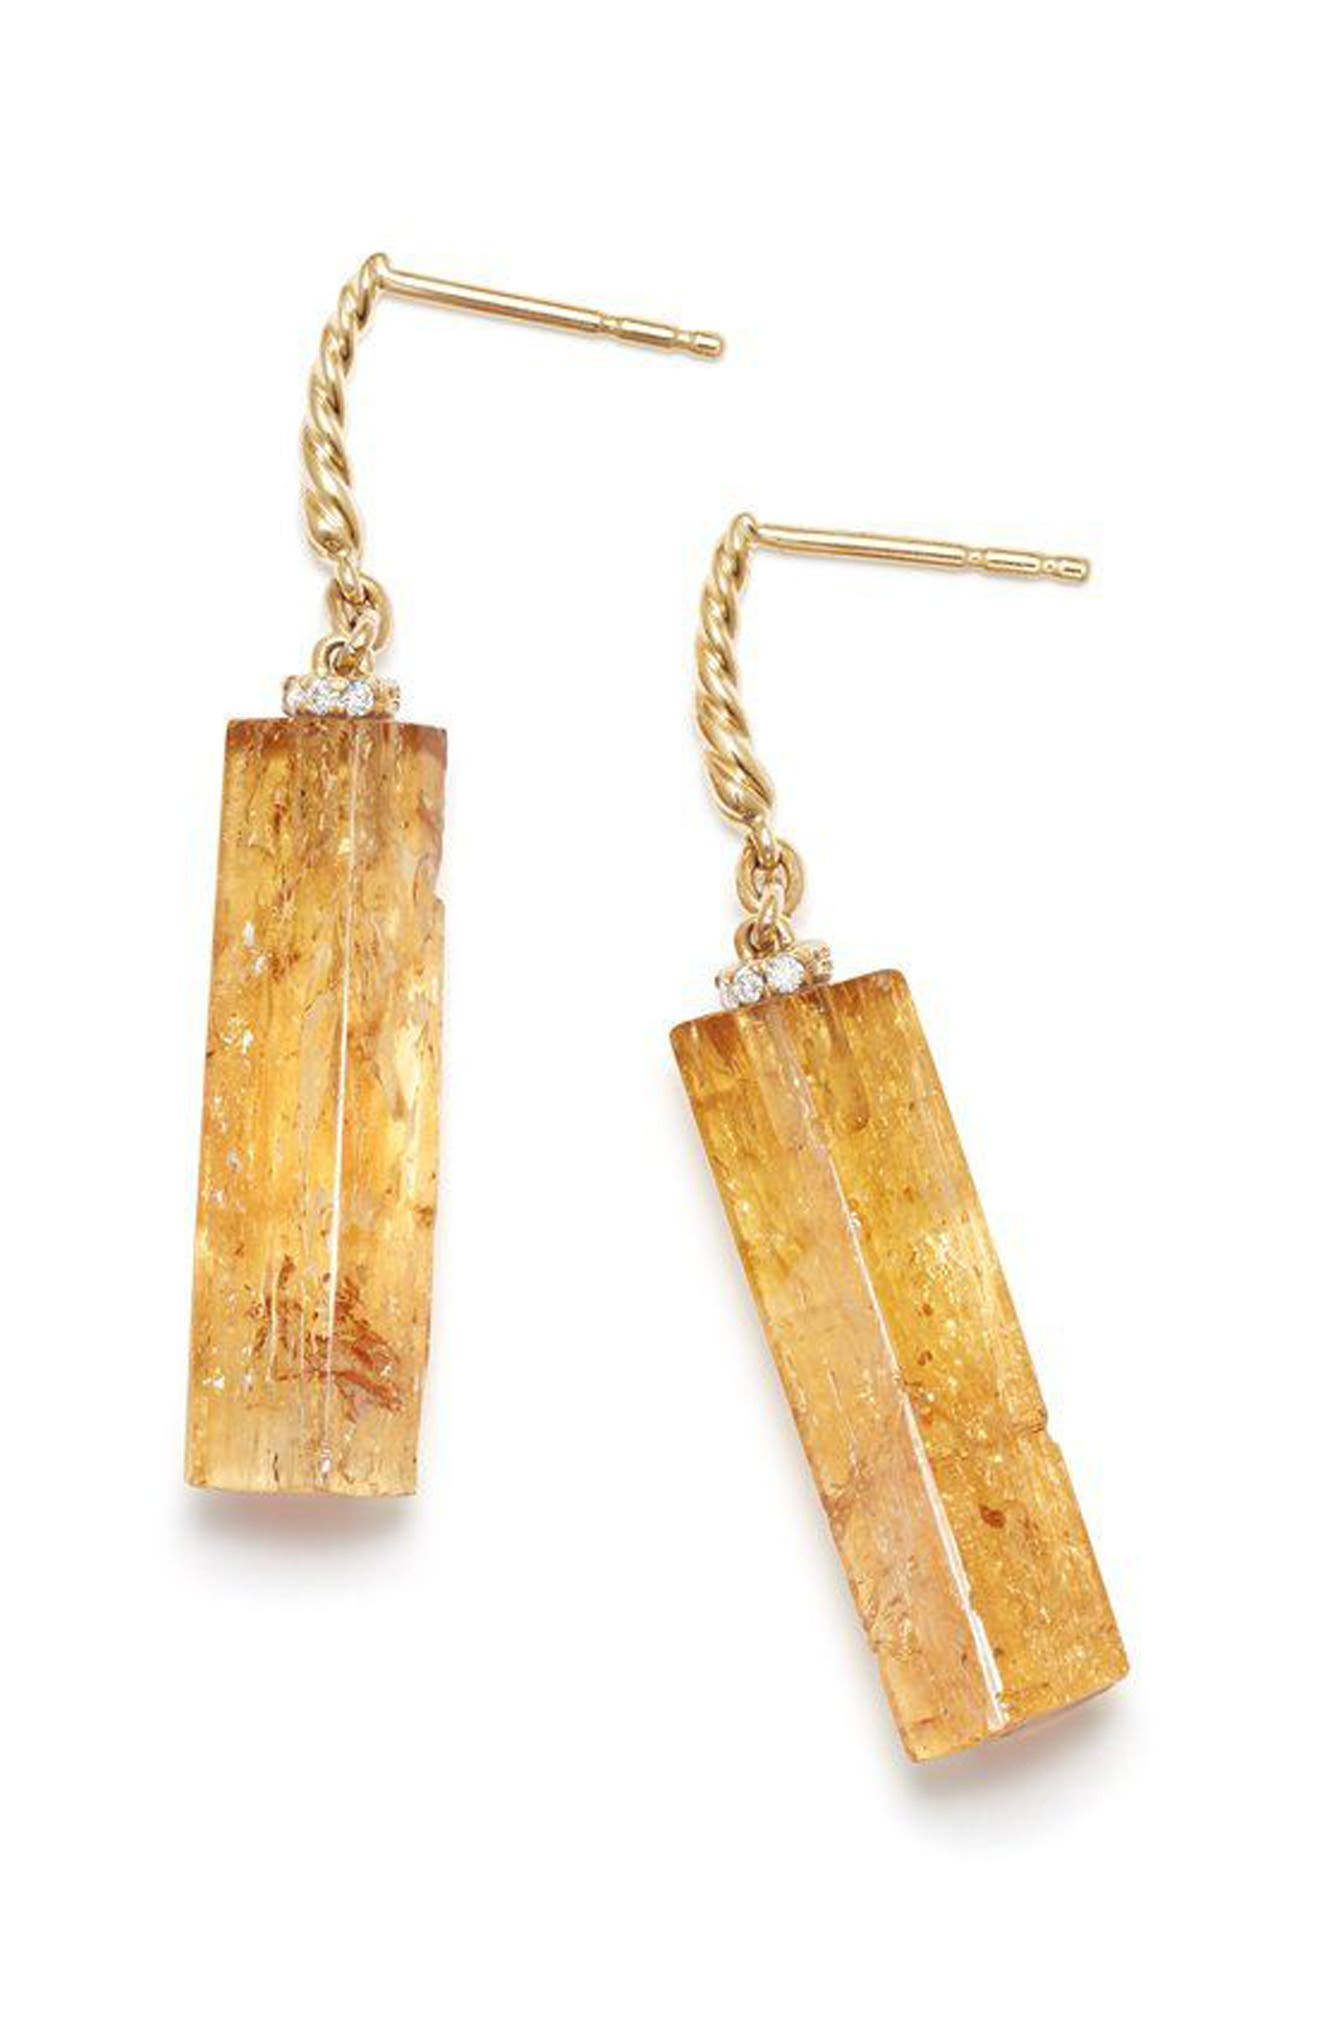 Bijoux Fine Bead and Chain Earrings with Imperial Topaz,                             Alternate thumbnail 2, color,                             Gold/ Imperial Topaz